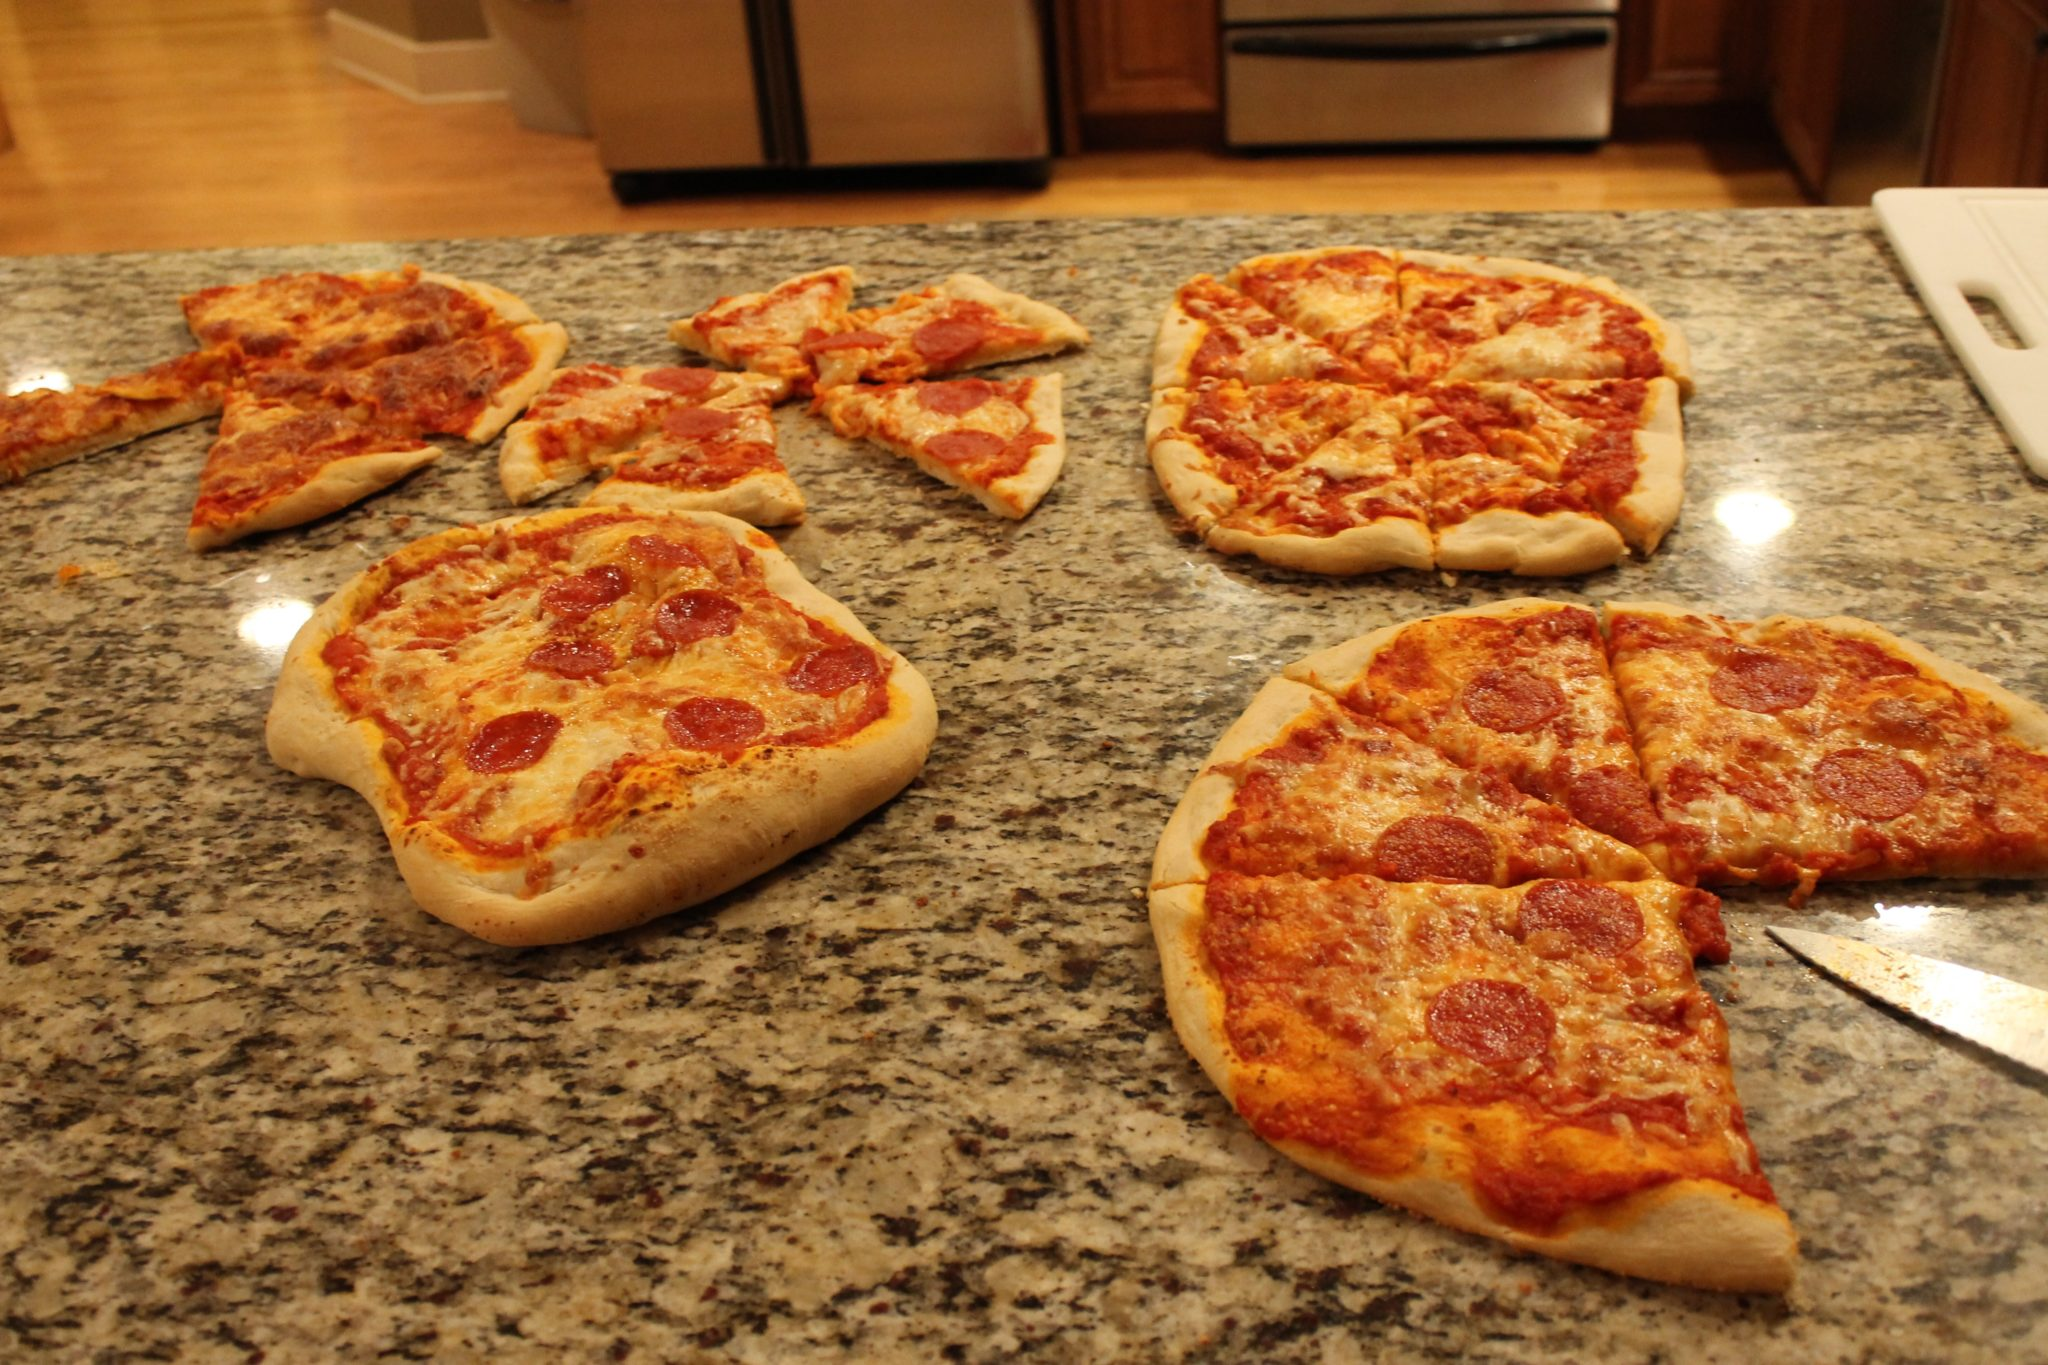 Pizza Is Any Easy And Delicious Dinner To Make When You Need Feed Large Groups